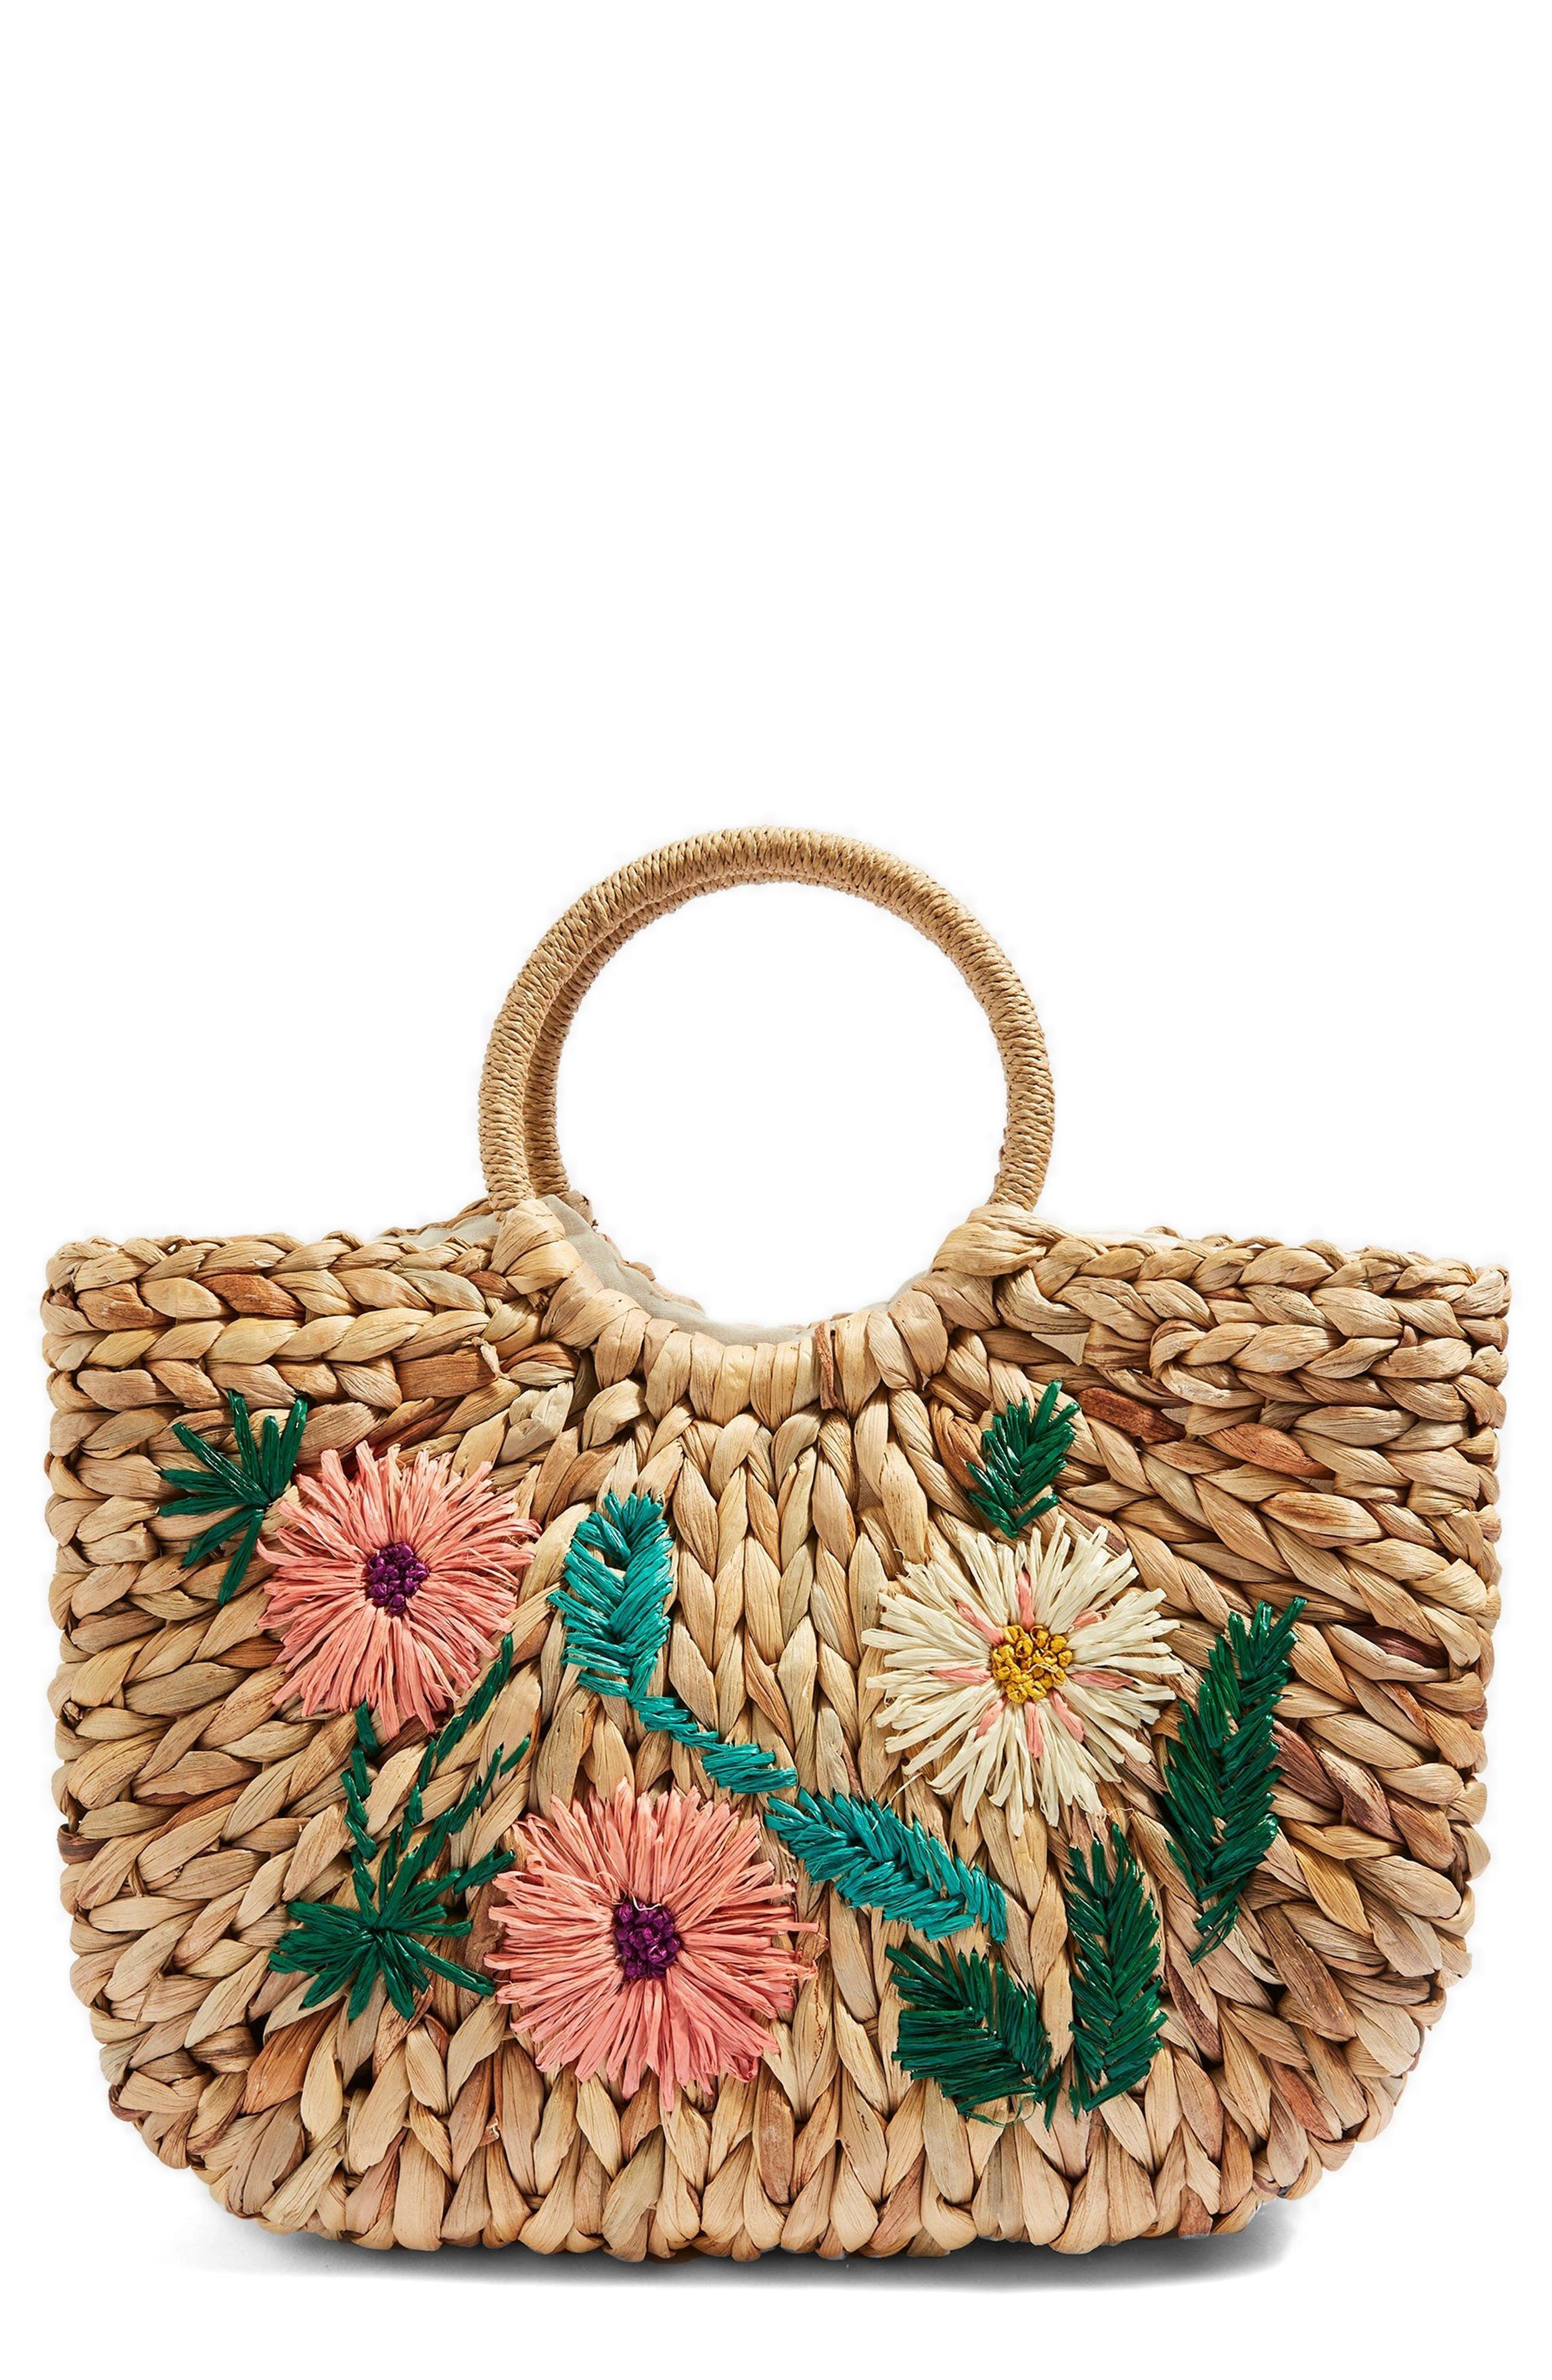 Beverly Floral Embroidered Straw Tote Bag,                             Main thumbnail 1, color,                             Nude Multi